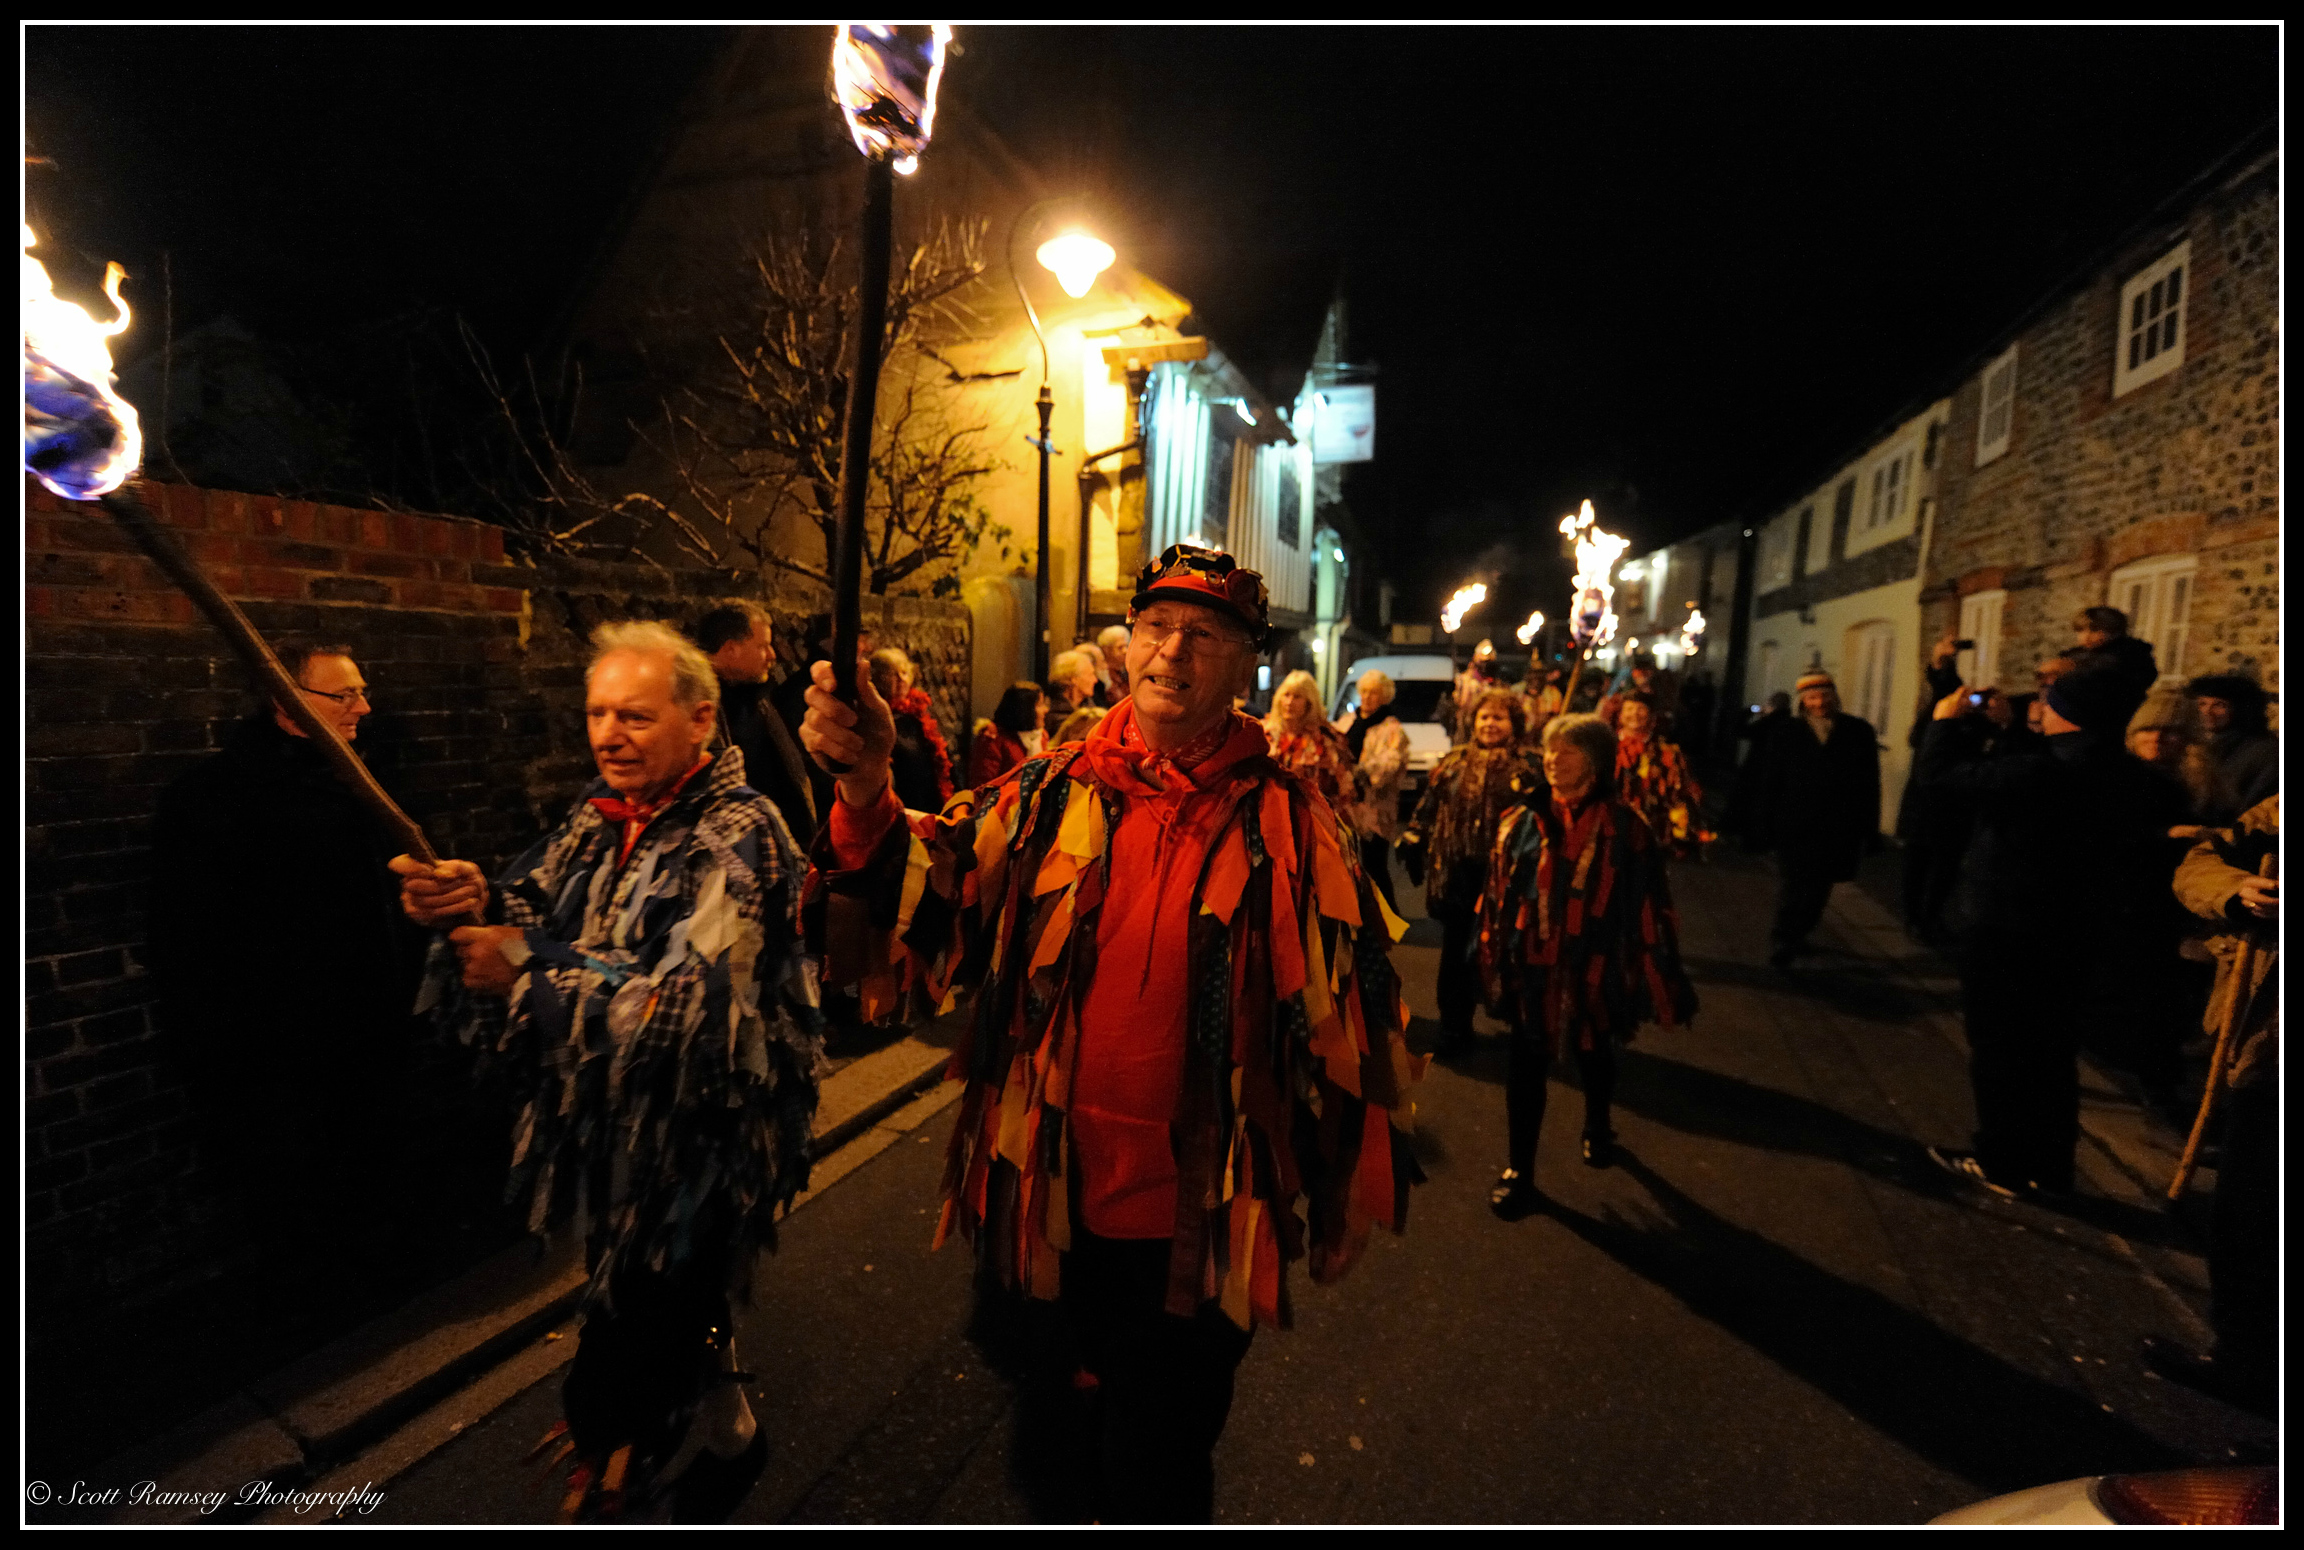 The Wassail at Tarring village. Members of the Sompting Village Morris carry  flaming torches as they lead the procession along the High Street in Tarring, West Sussex.